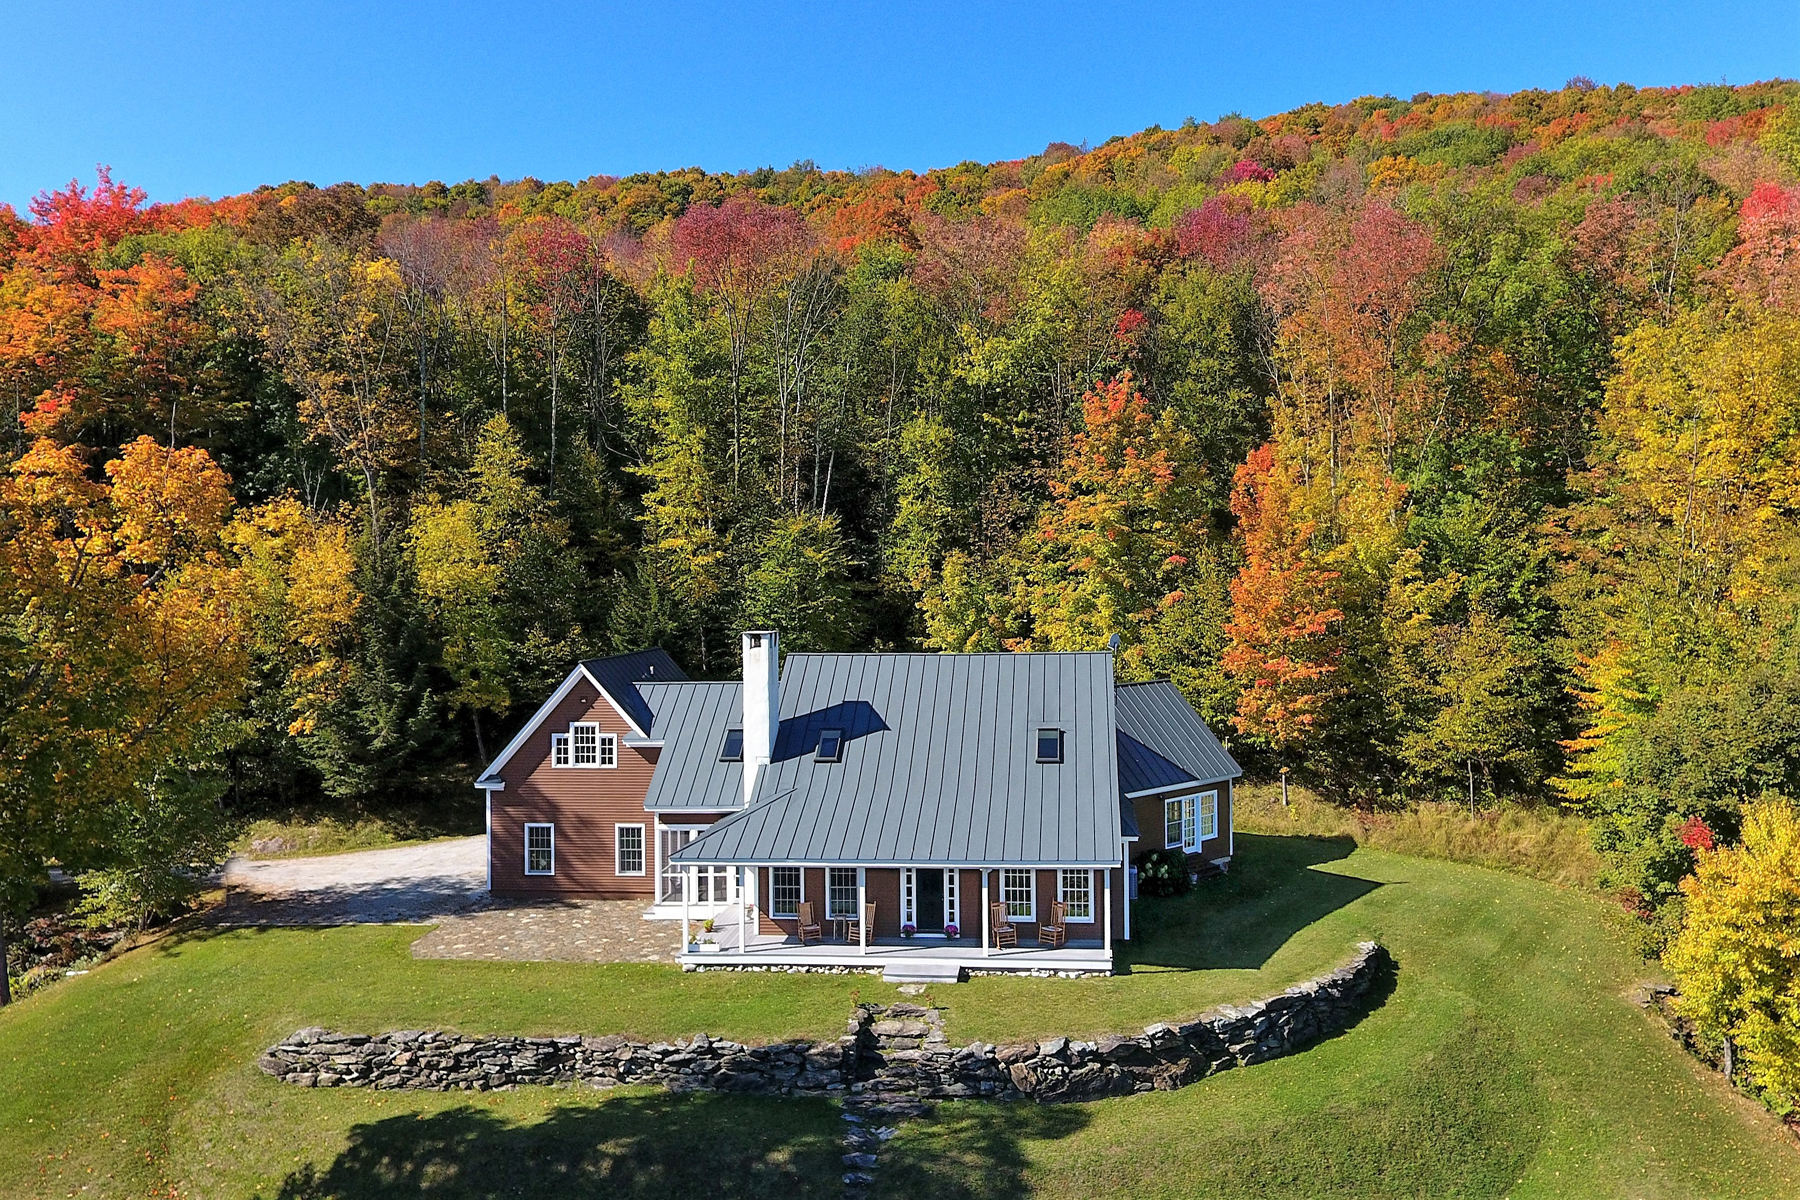 Single Family Homes for Sale at Gracious Home affords Seclusion, Serenity and Arch 394 Hounds Hill Ln Wallingford, Vermont 05773 United States